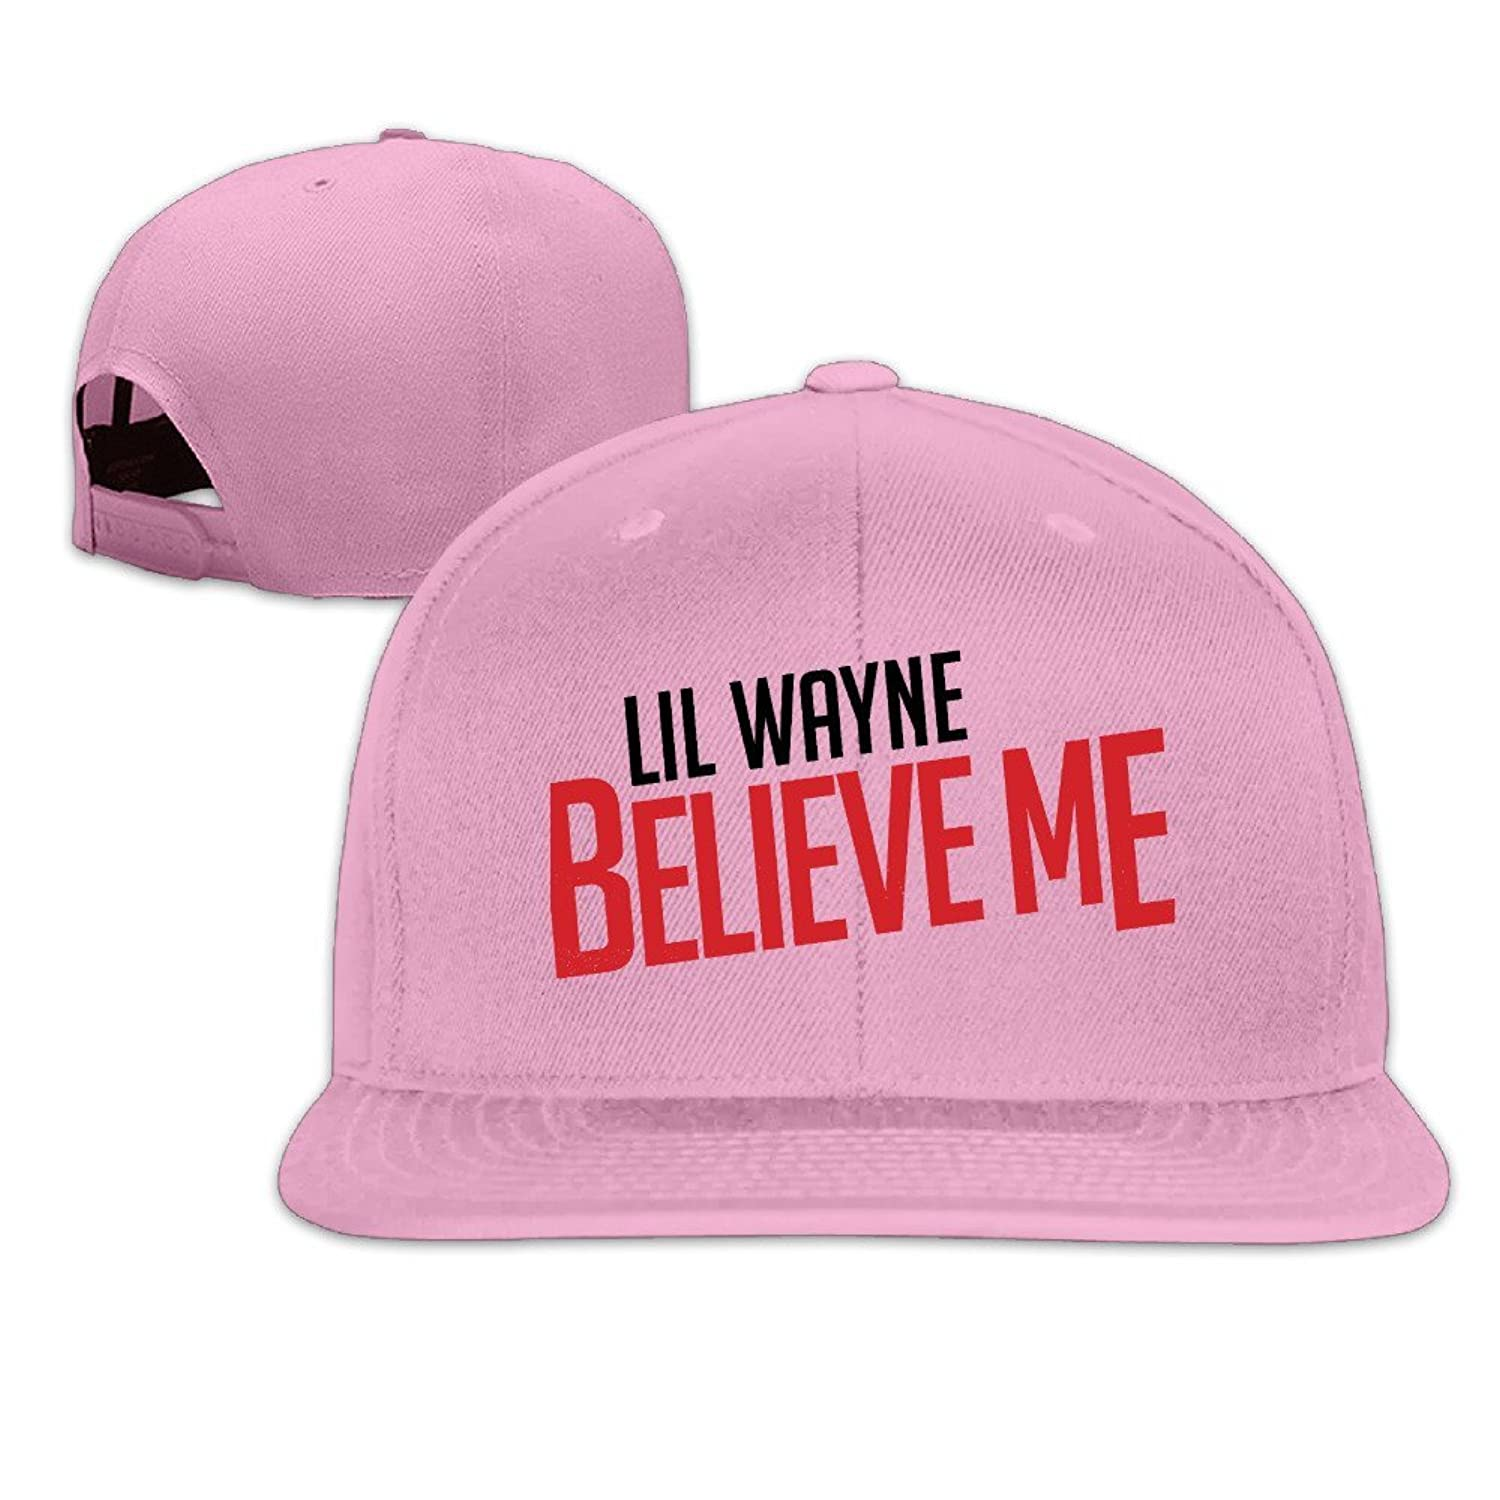 BestSeller Lil Wayne Believe Me Snapback Adjustable Flat Baseball Cap/Hat For Unisex